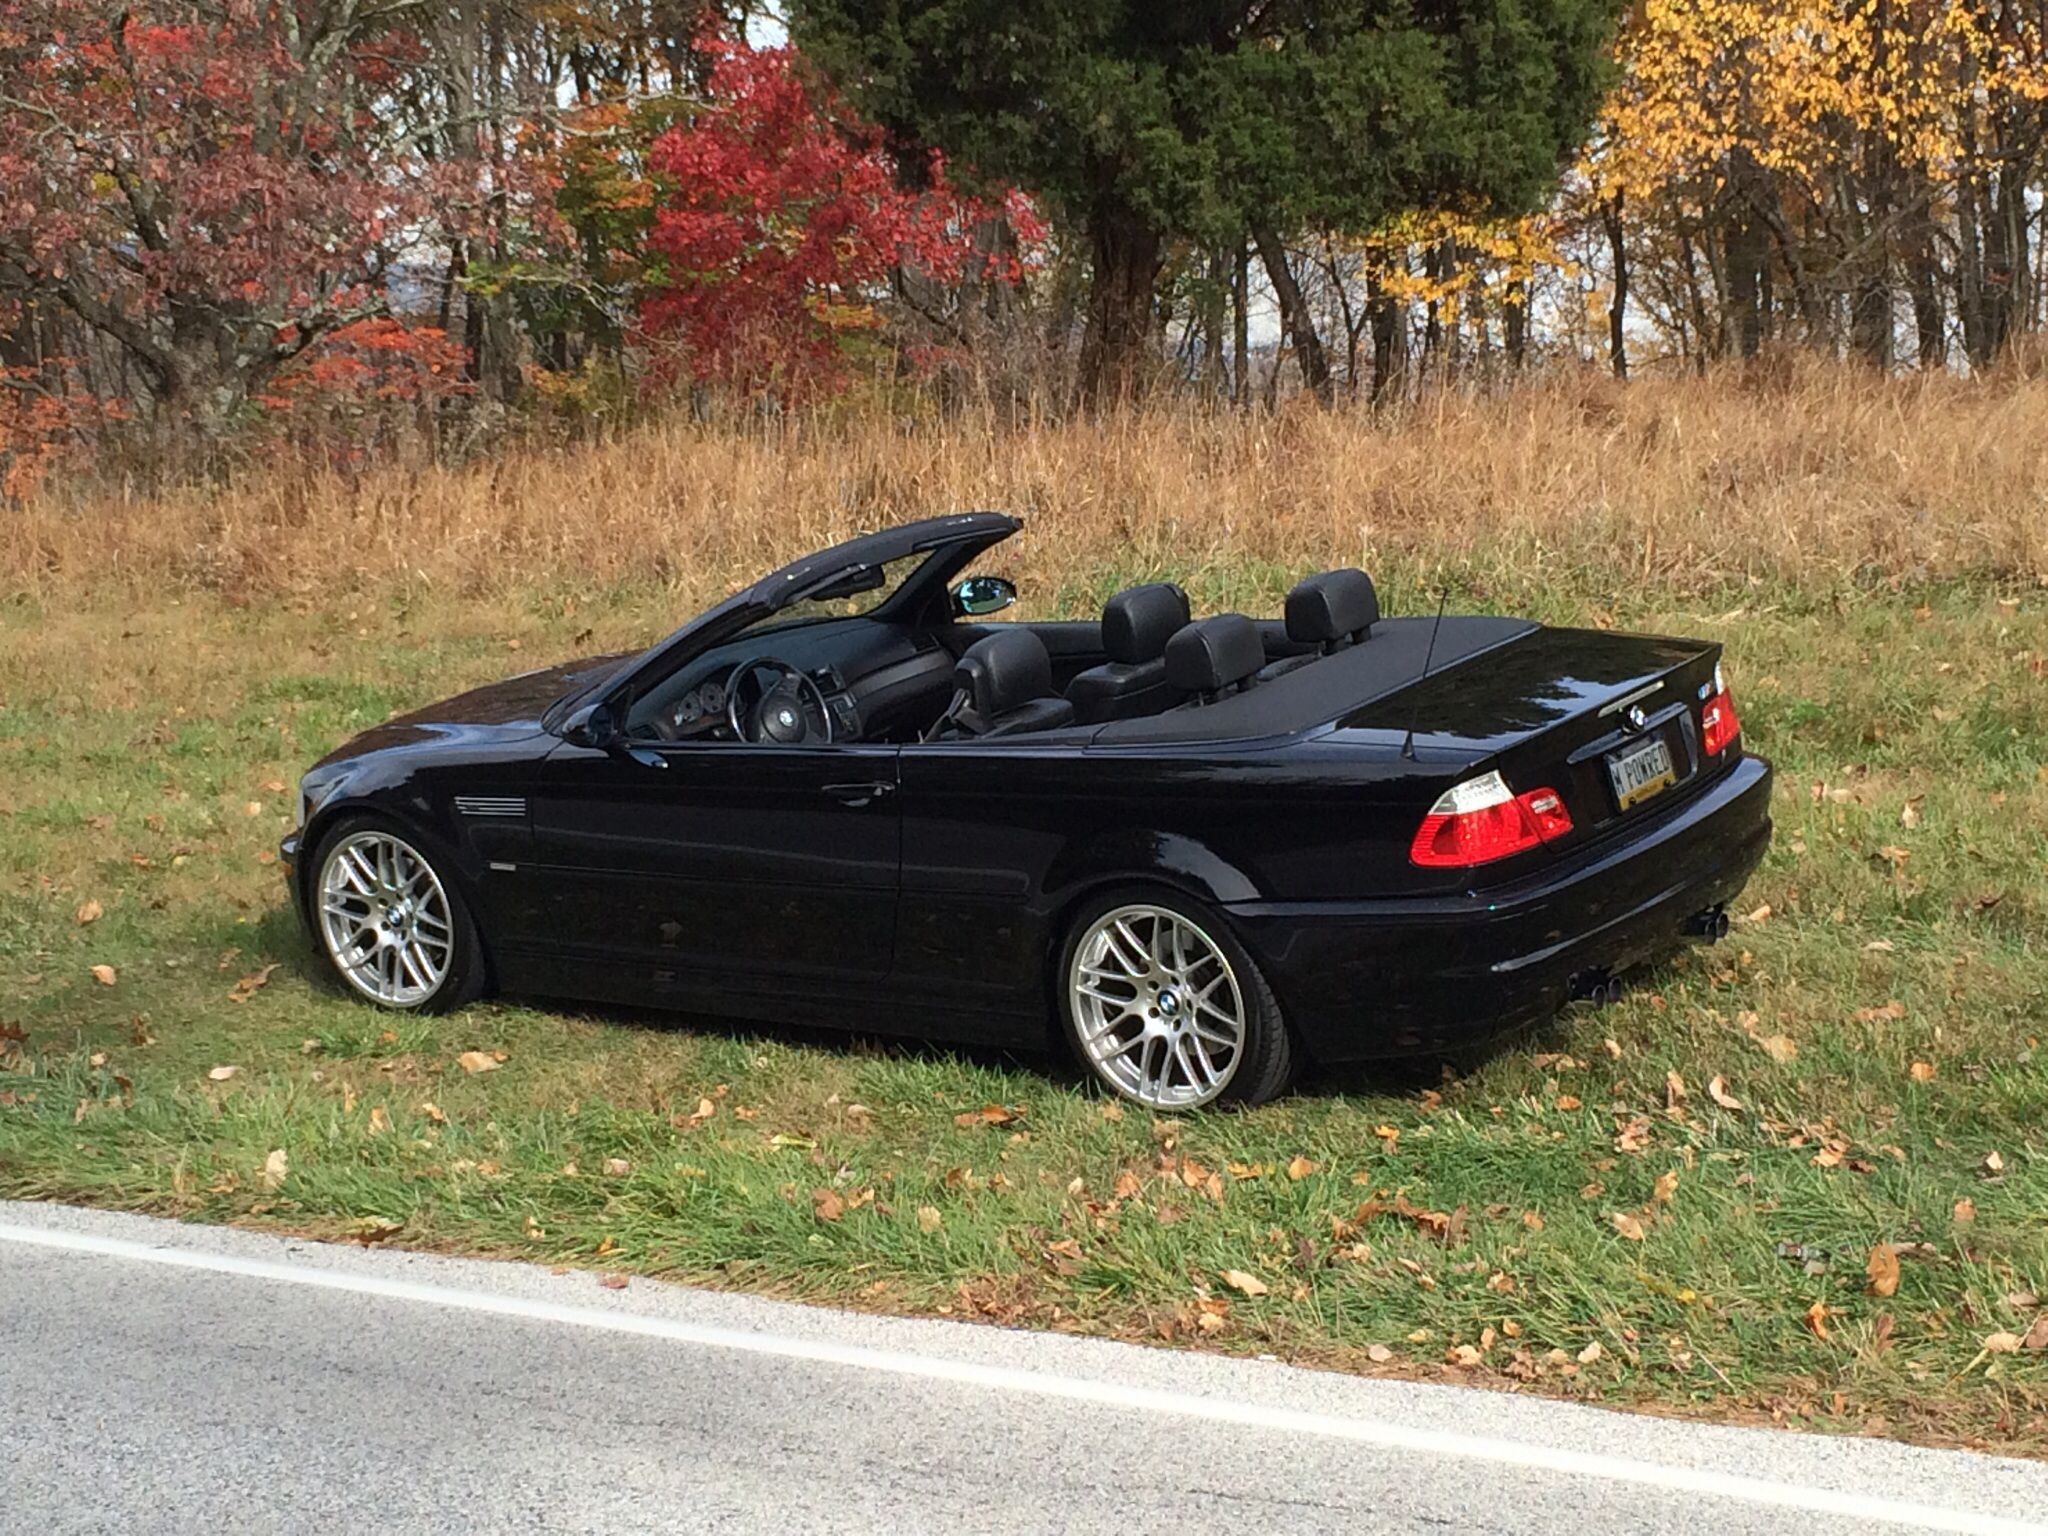 2004 Bmw E46 M3 With Images Bmw Bmw 3 Series Convertible Bmw E46